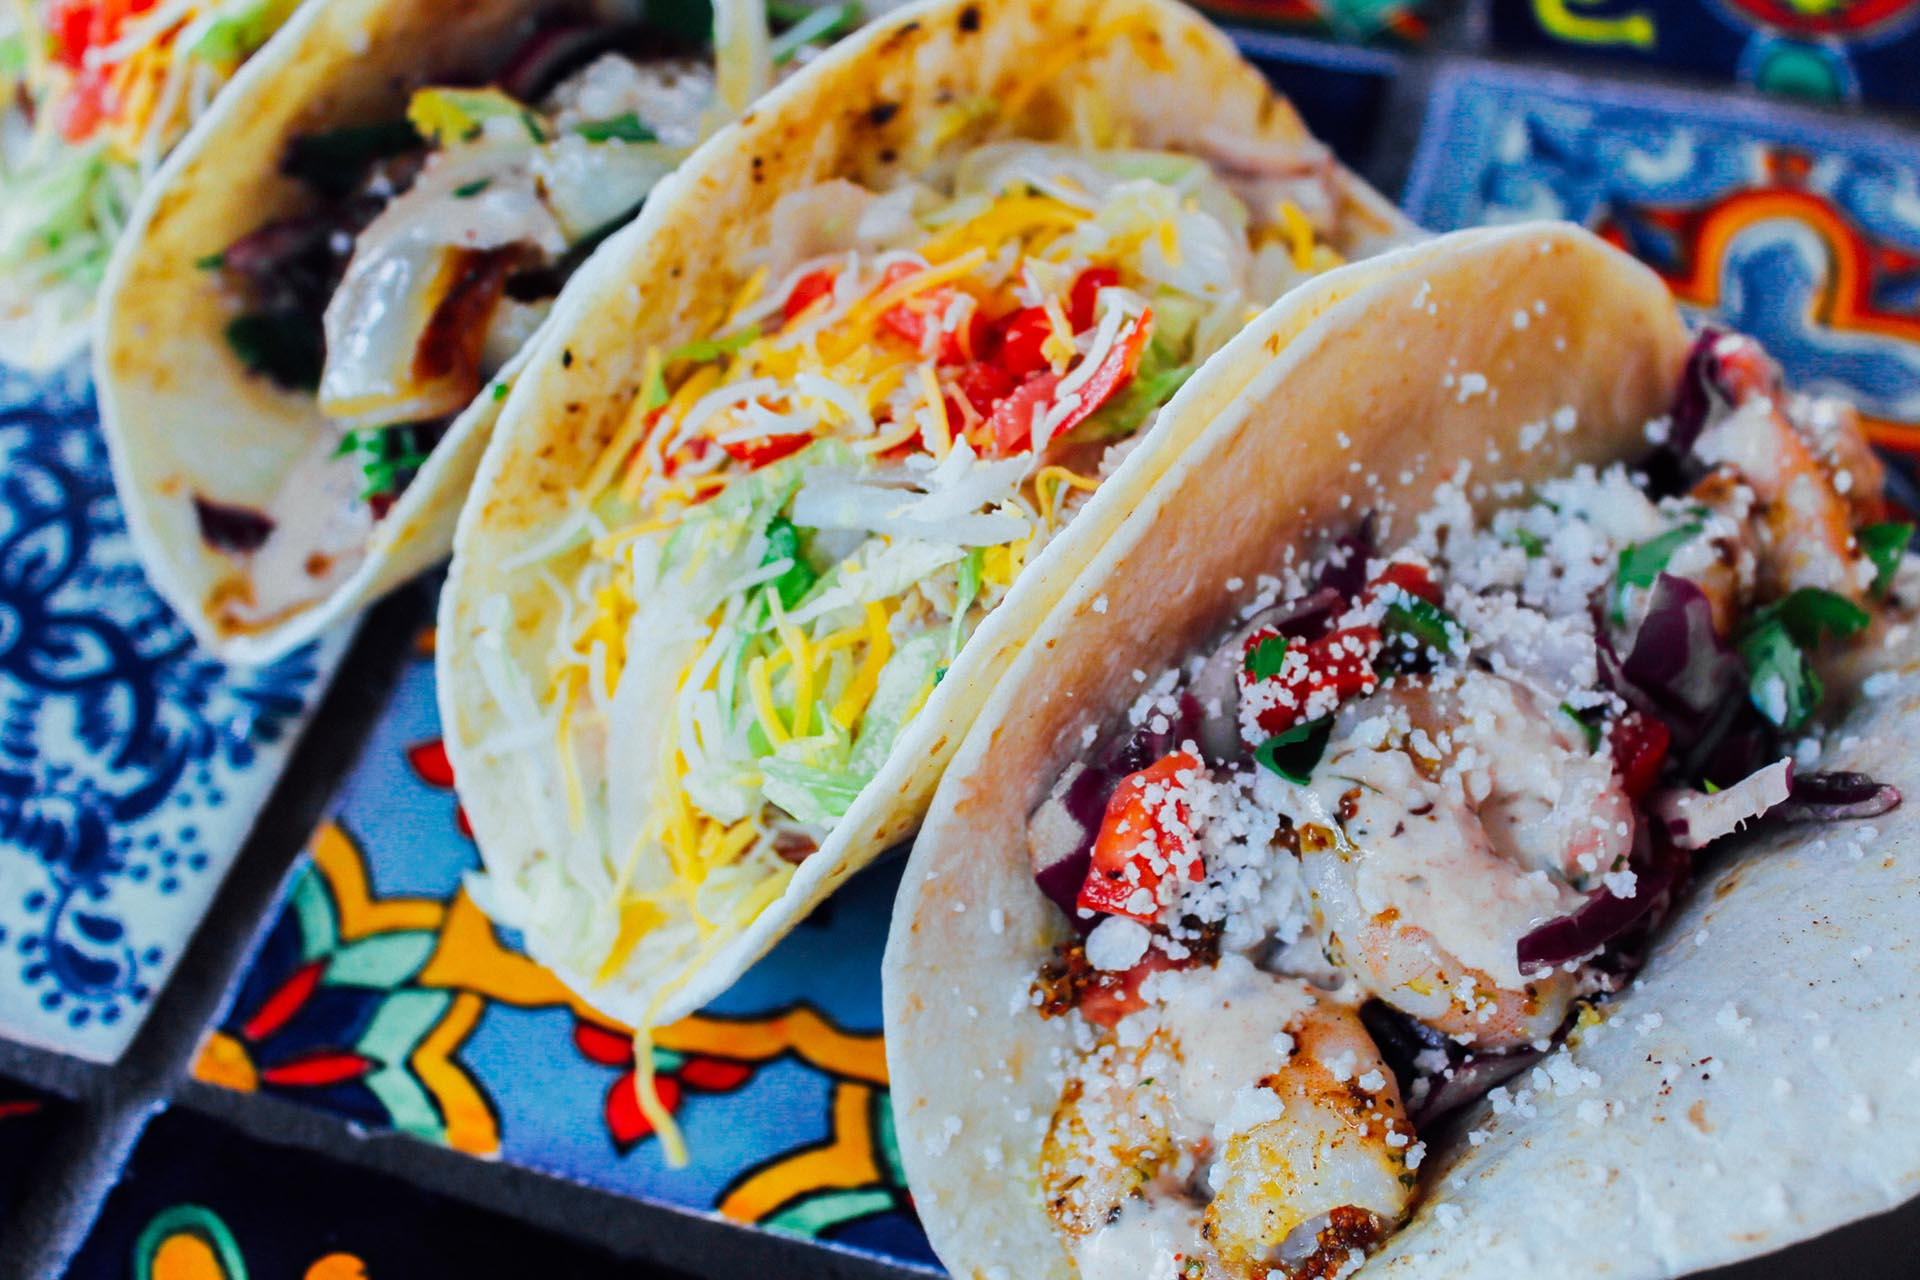 20 places to get a taco in Tampa Bay